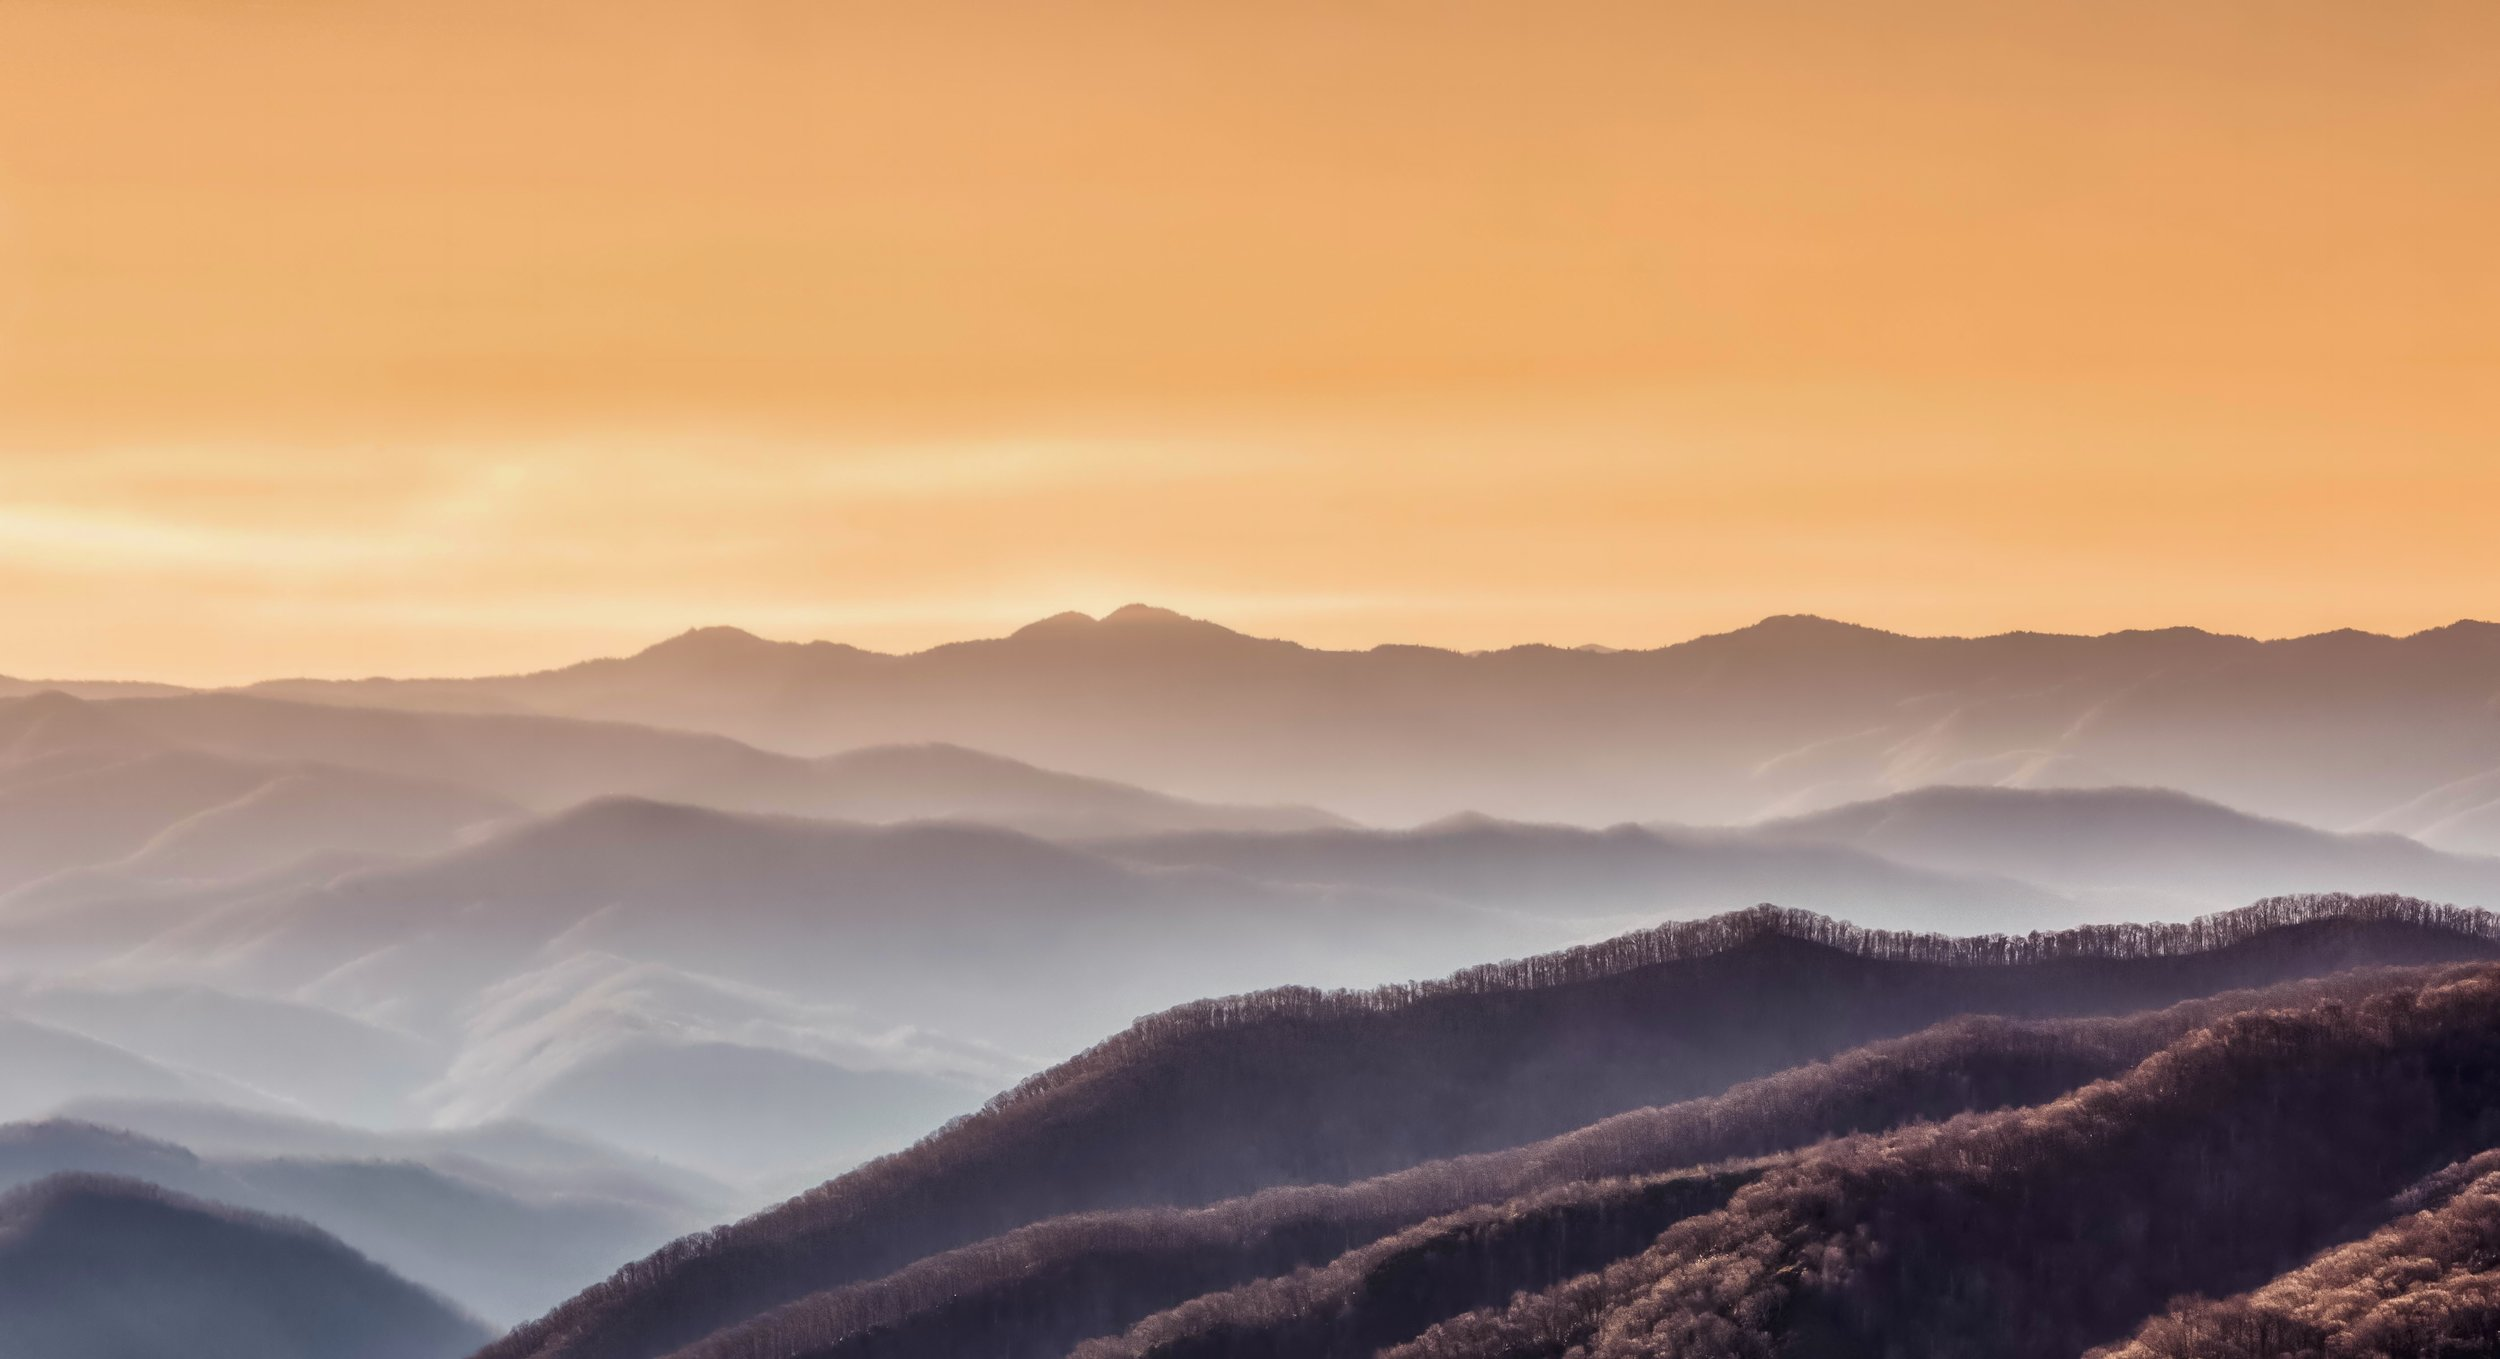 smoky mountains are well-regarded for offering one of the best hiking trails in america